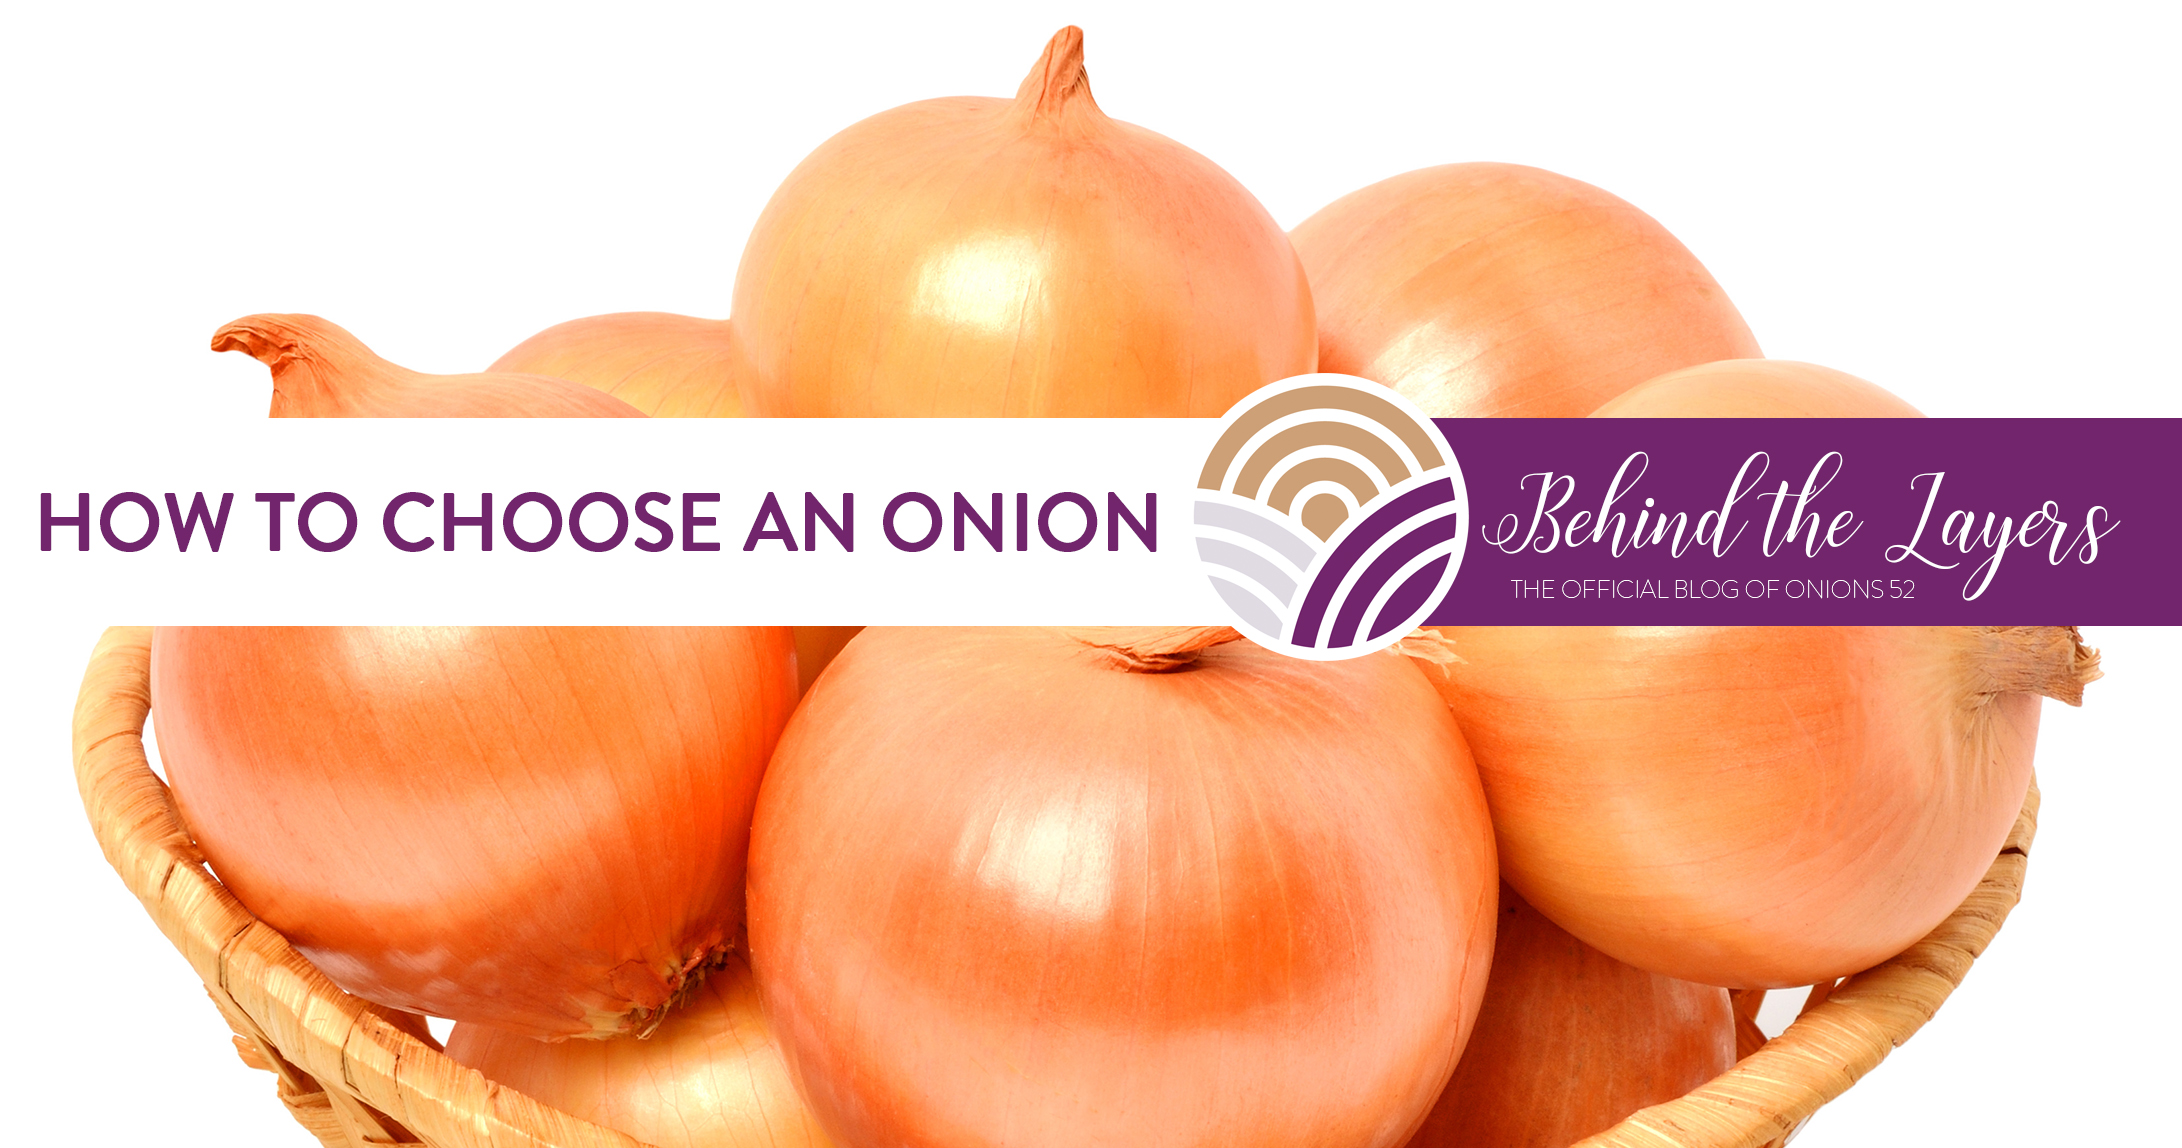 How to Choose an Onion